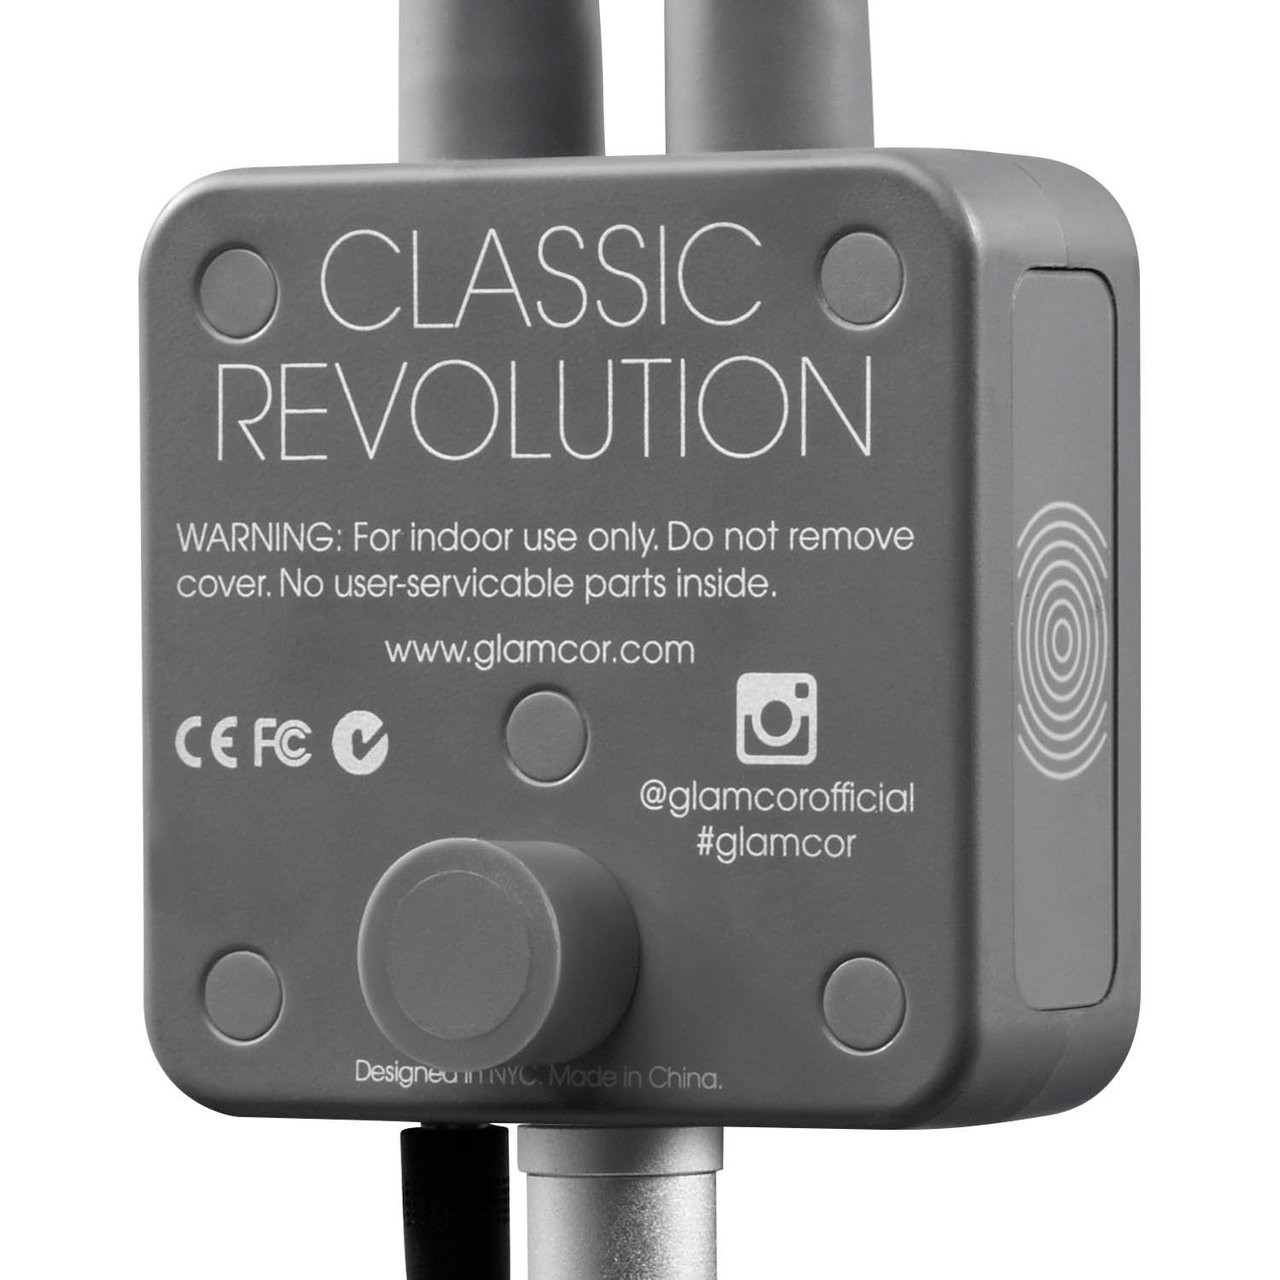 Glamcor Classic Revolution - Pro Lighting for Permanent Makeup (PMU)